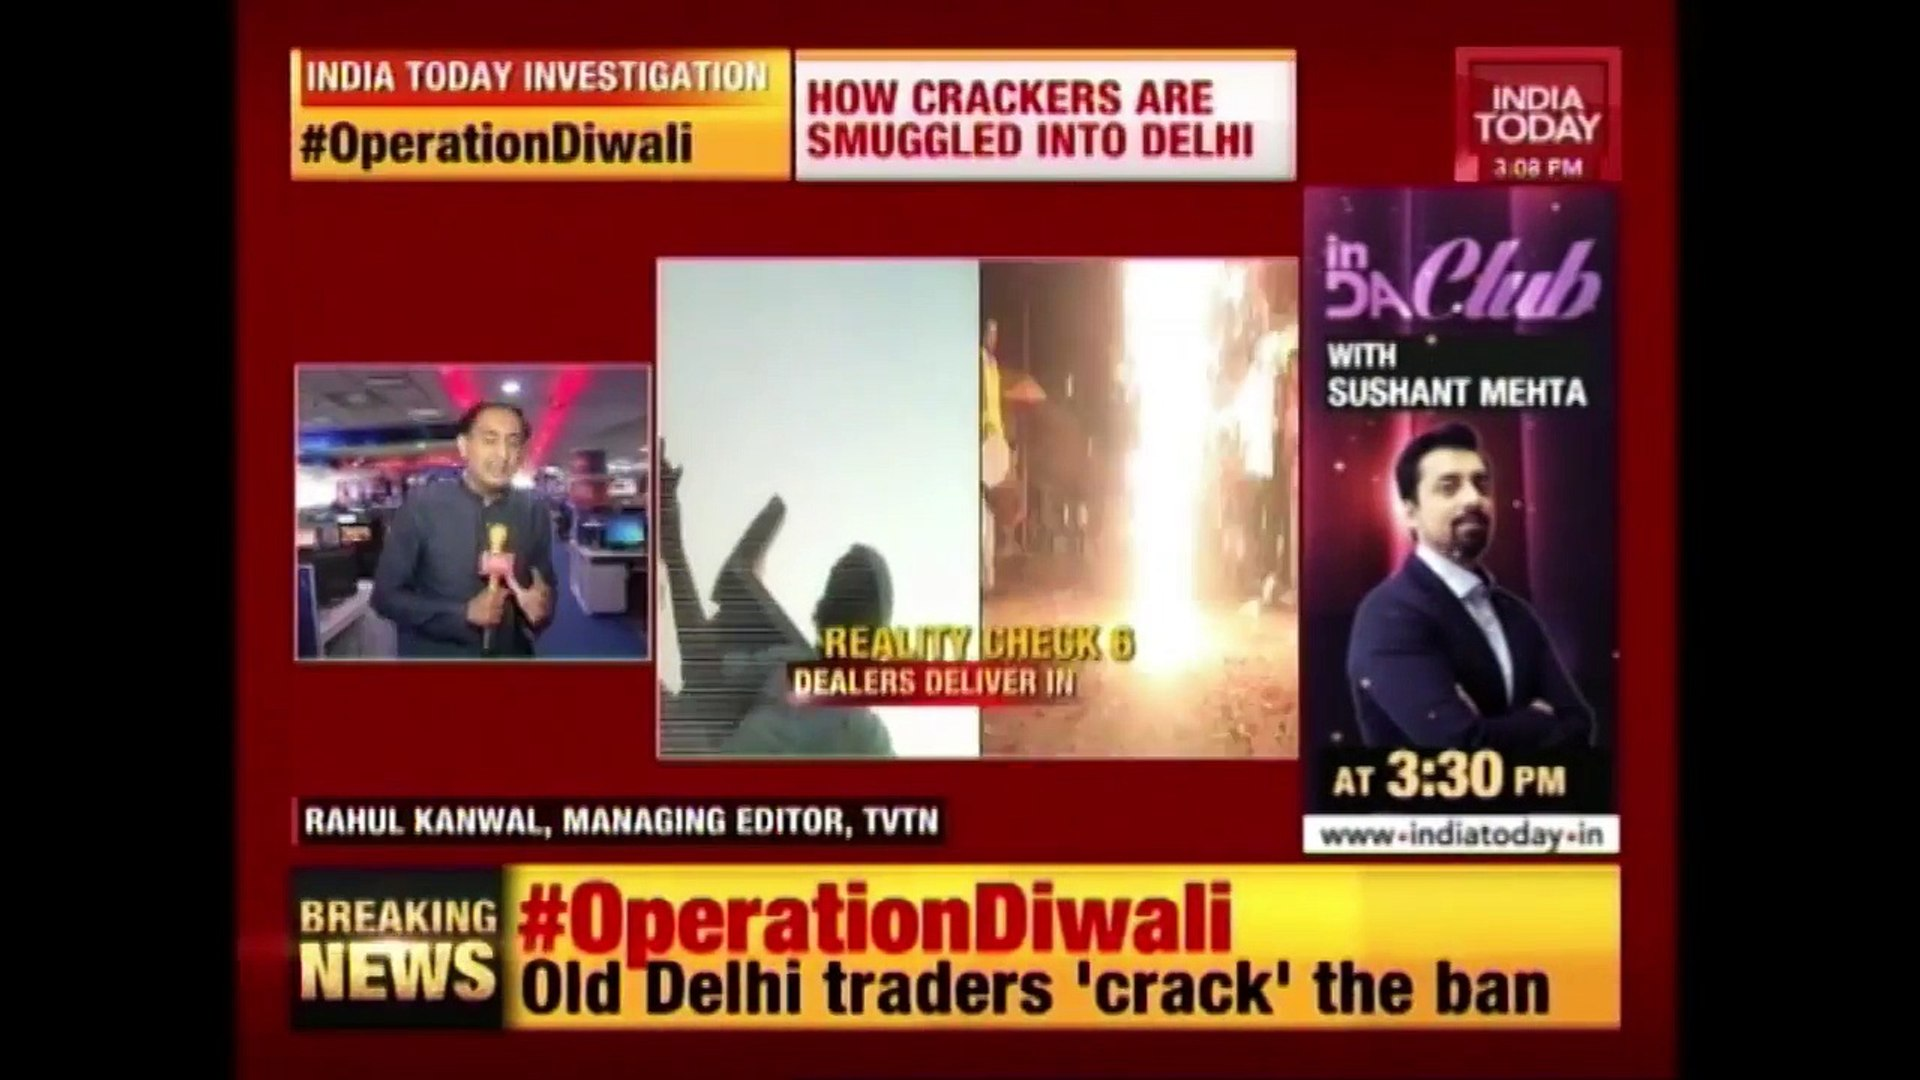 Operation Diwali: India Today Sting Exposes Backdoor Sales Of Firecrackers In Delhi NCR